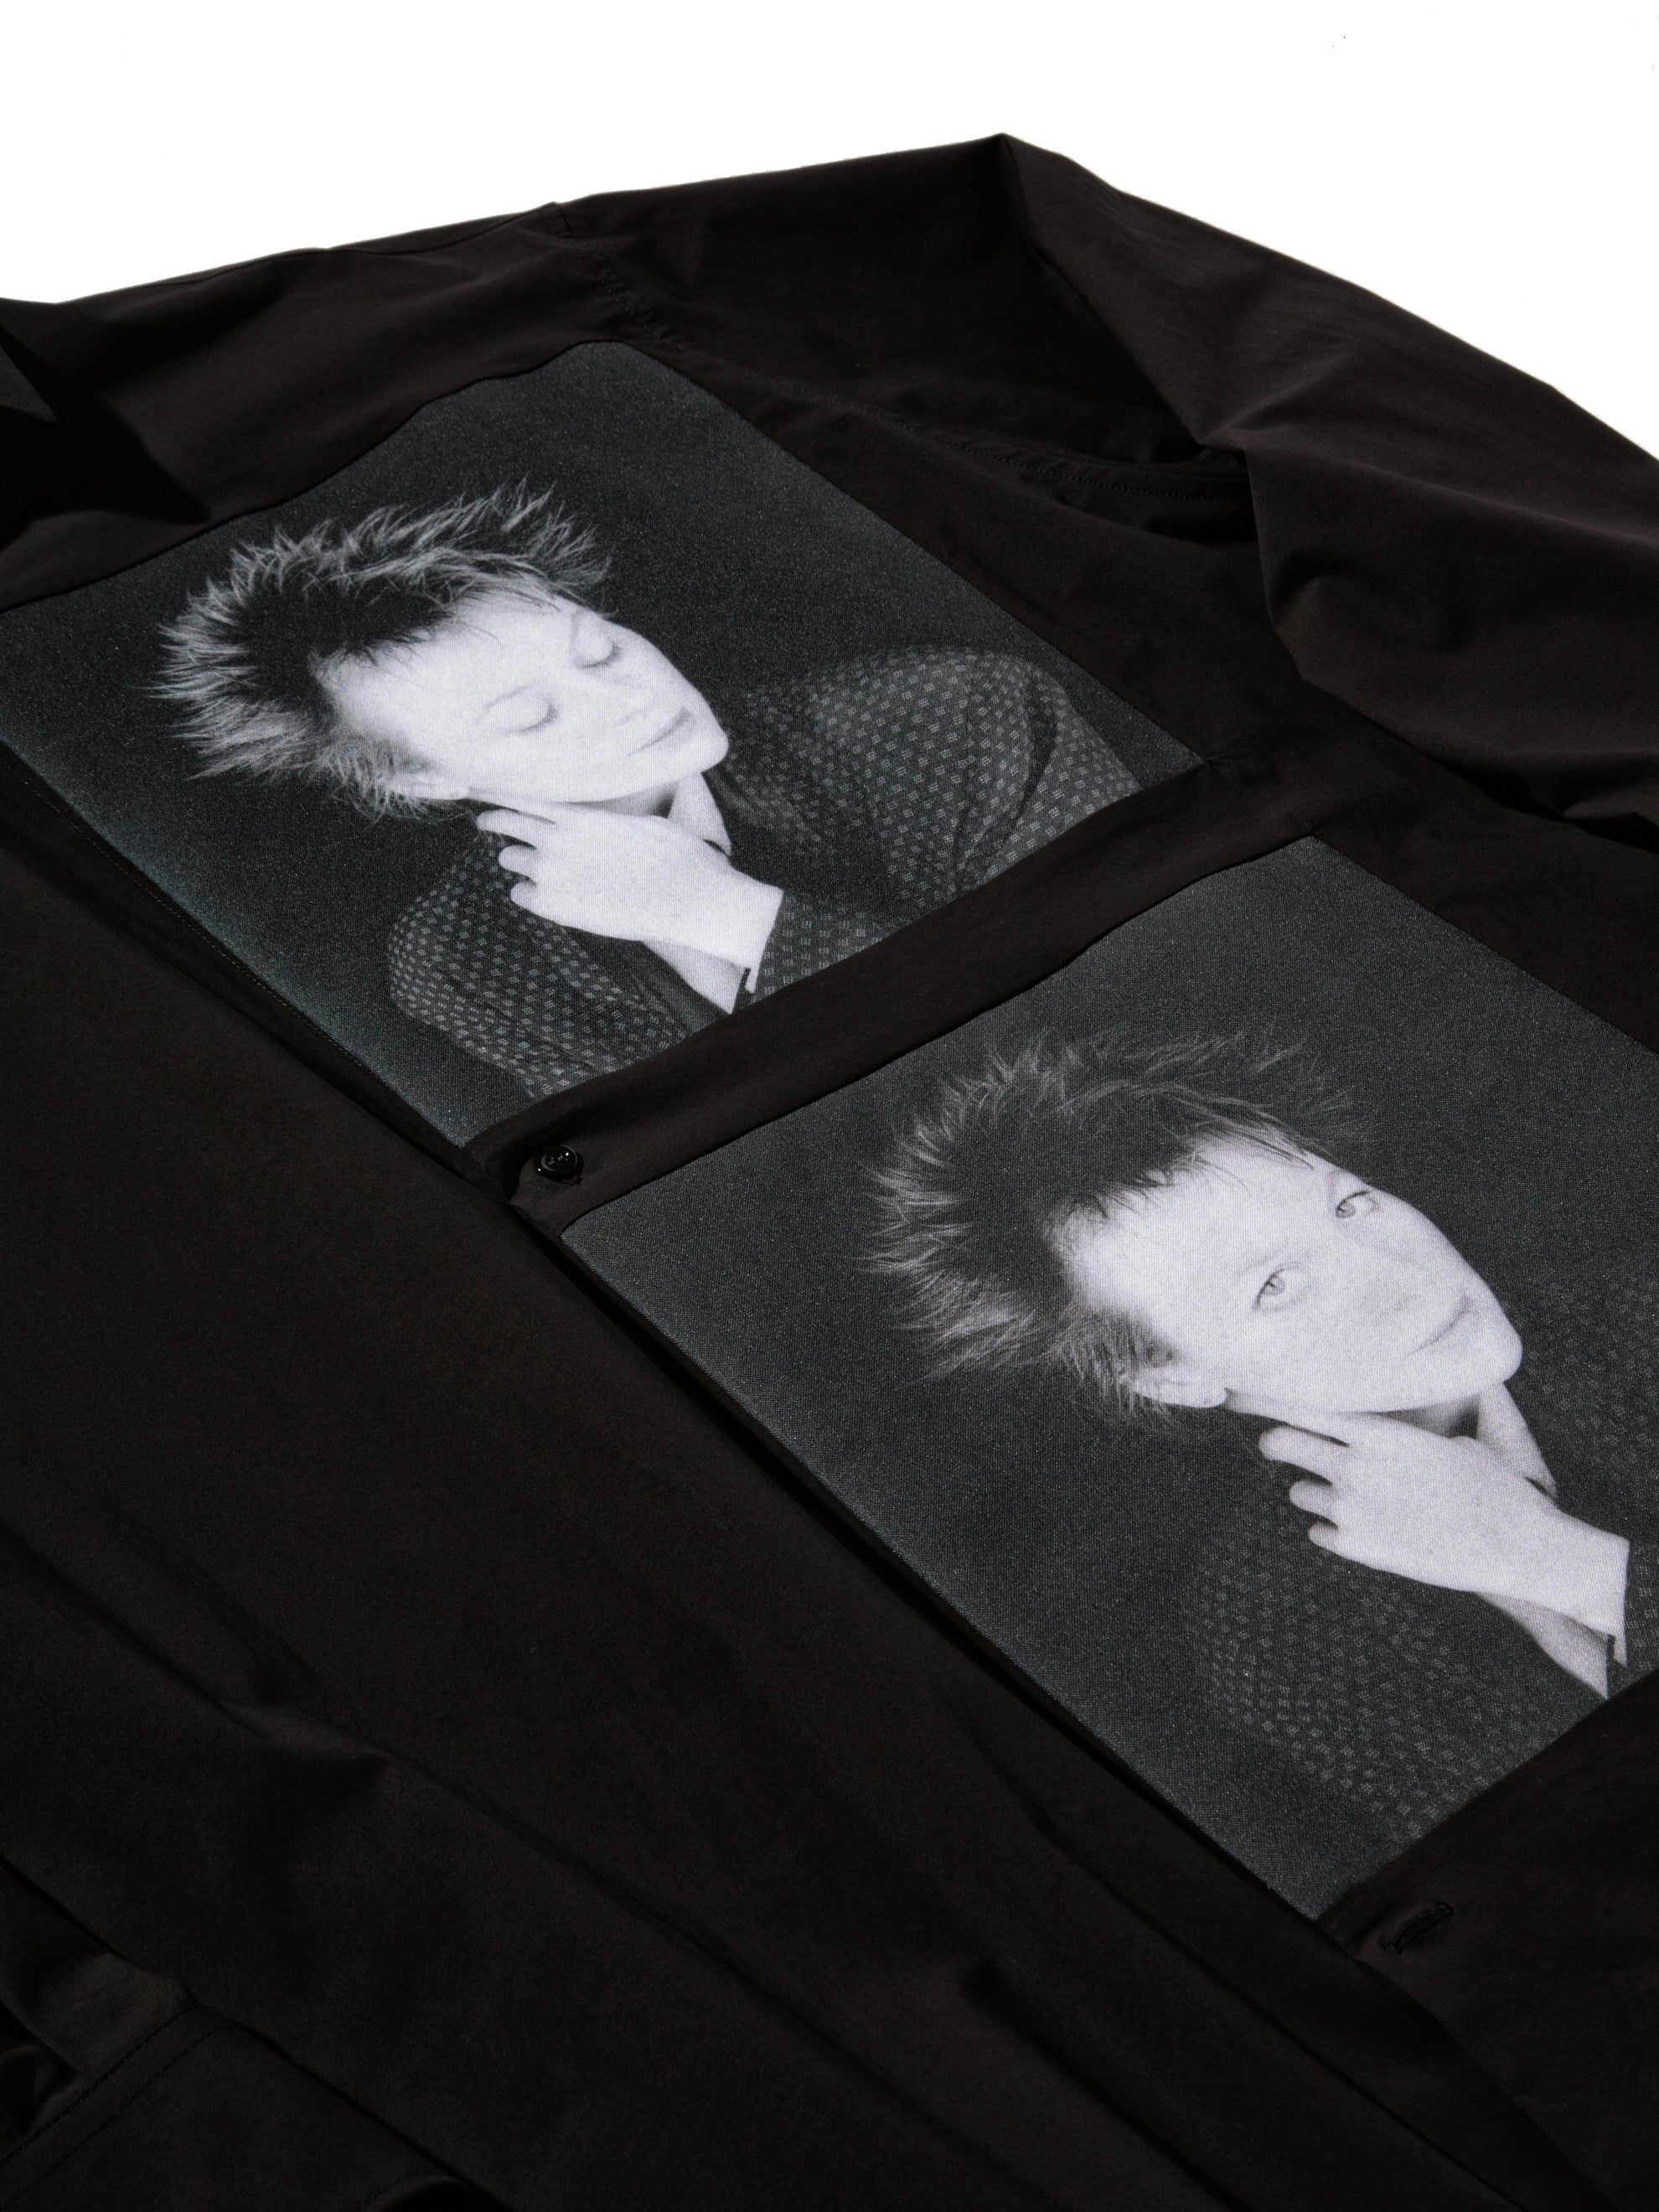 Black Oversized Shirt (Laurie Anderson, 1987) 5